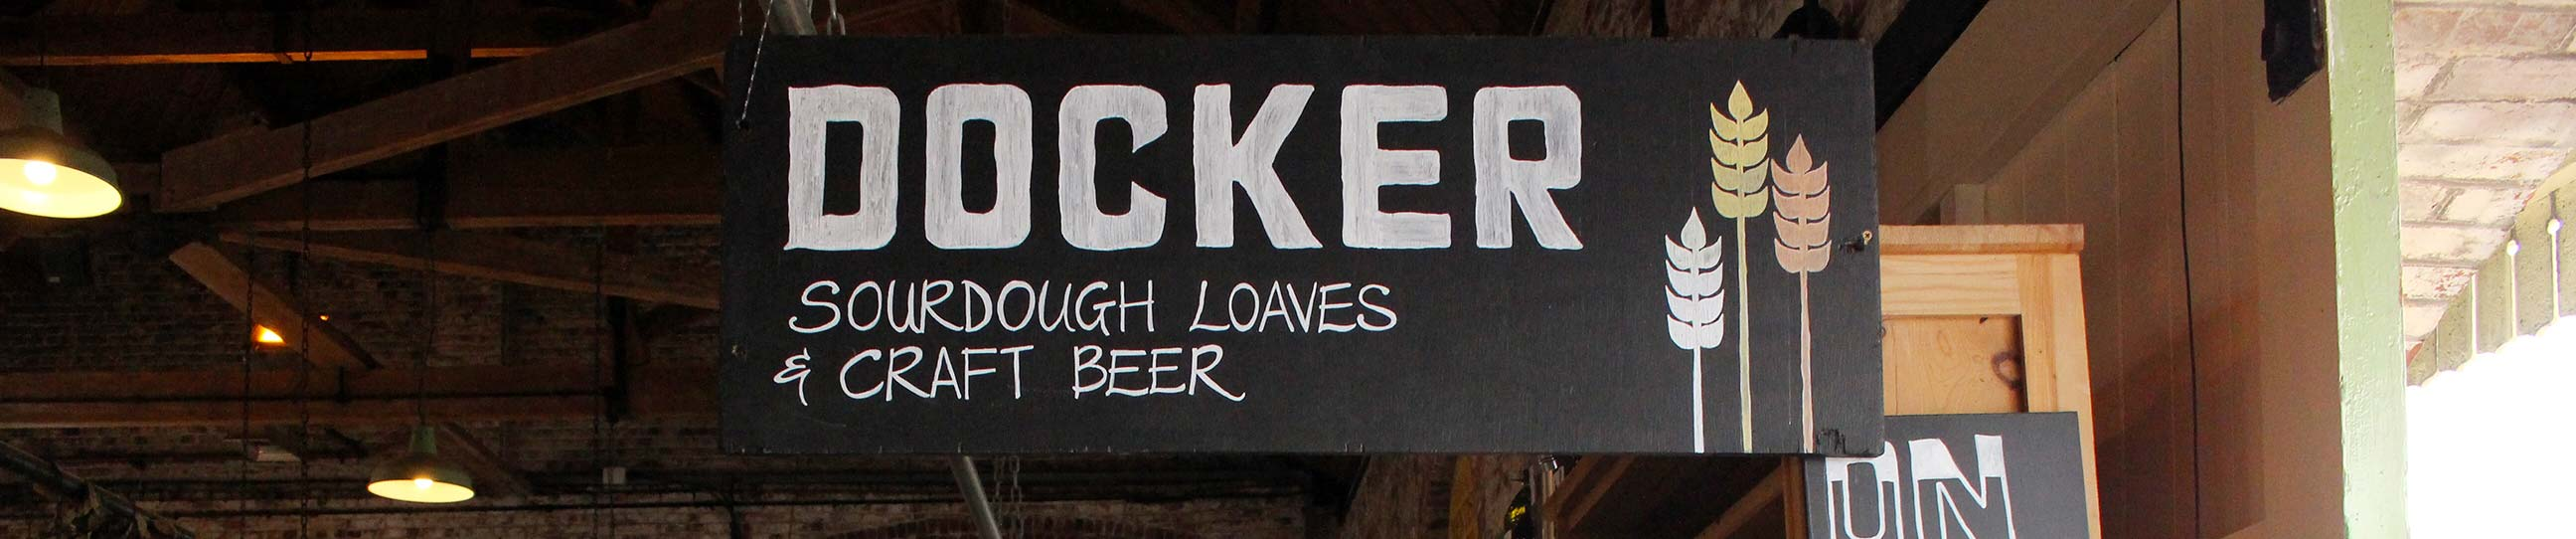 Docker Sourdough Bread and Craft Beers